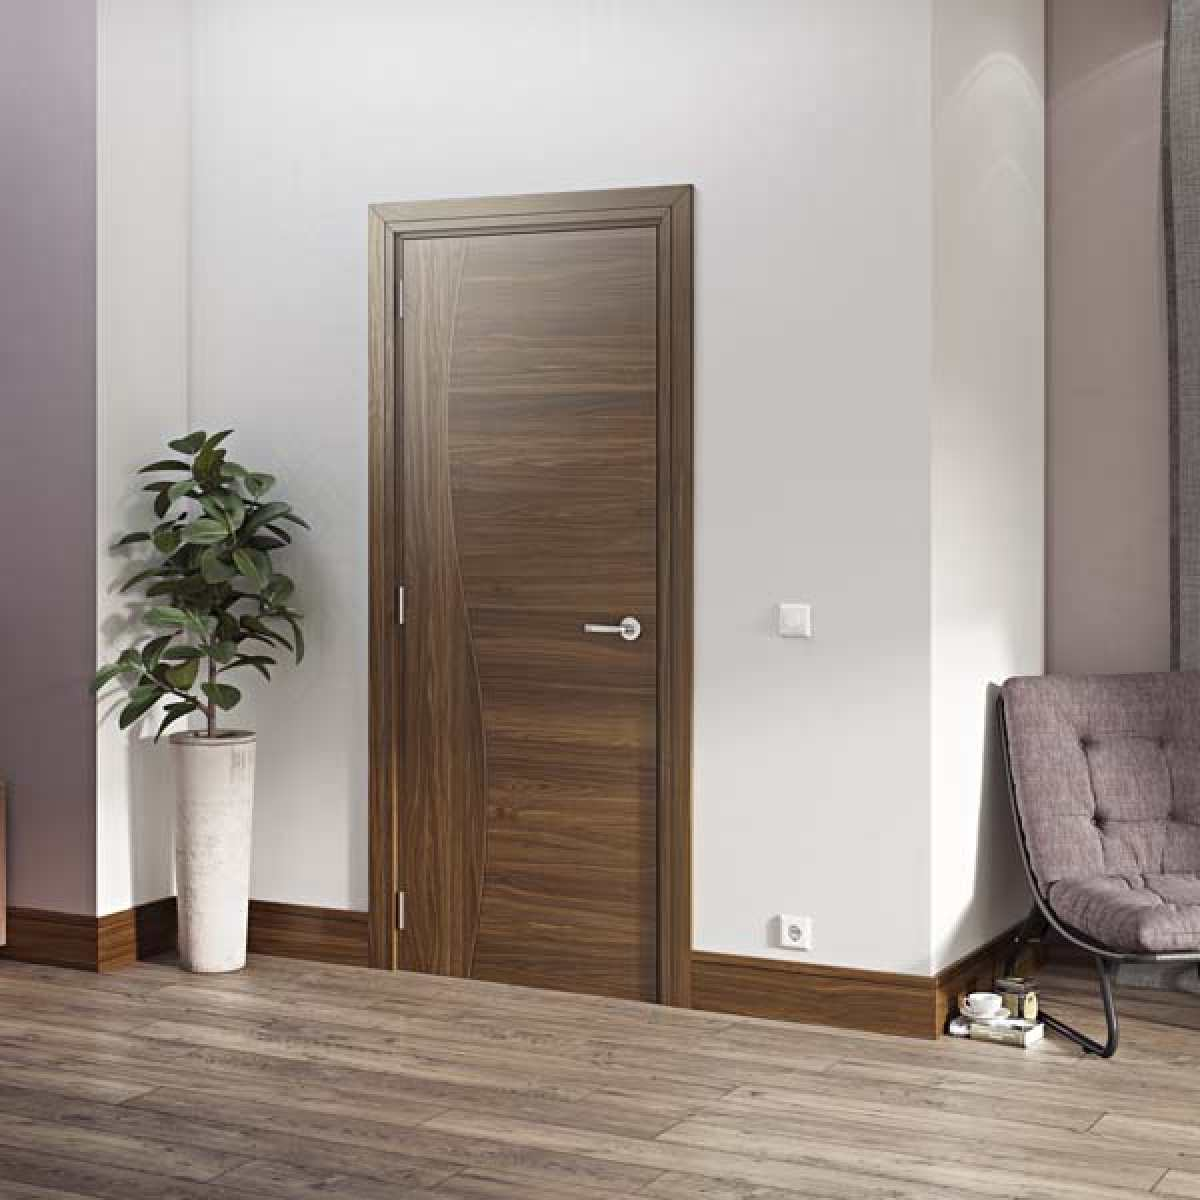 cadiz walnut lifestyle websters Image by Websters Timber